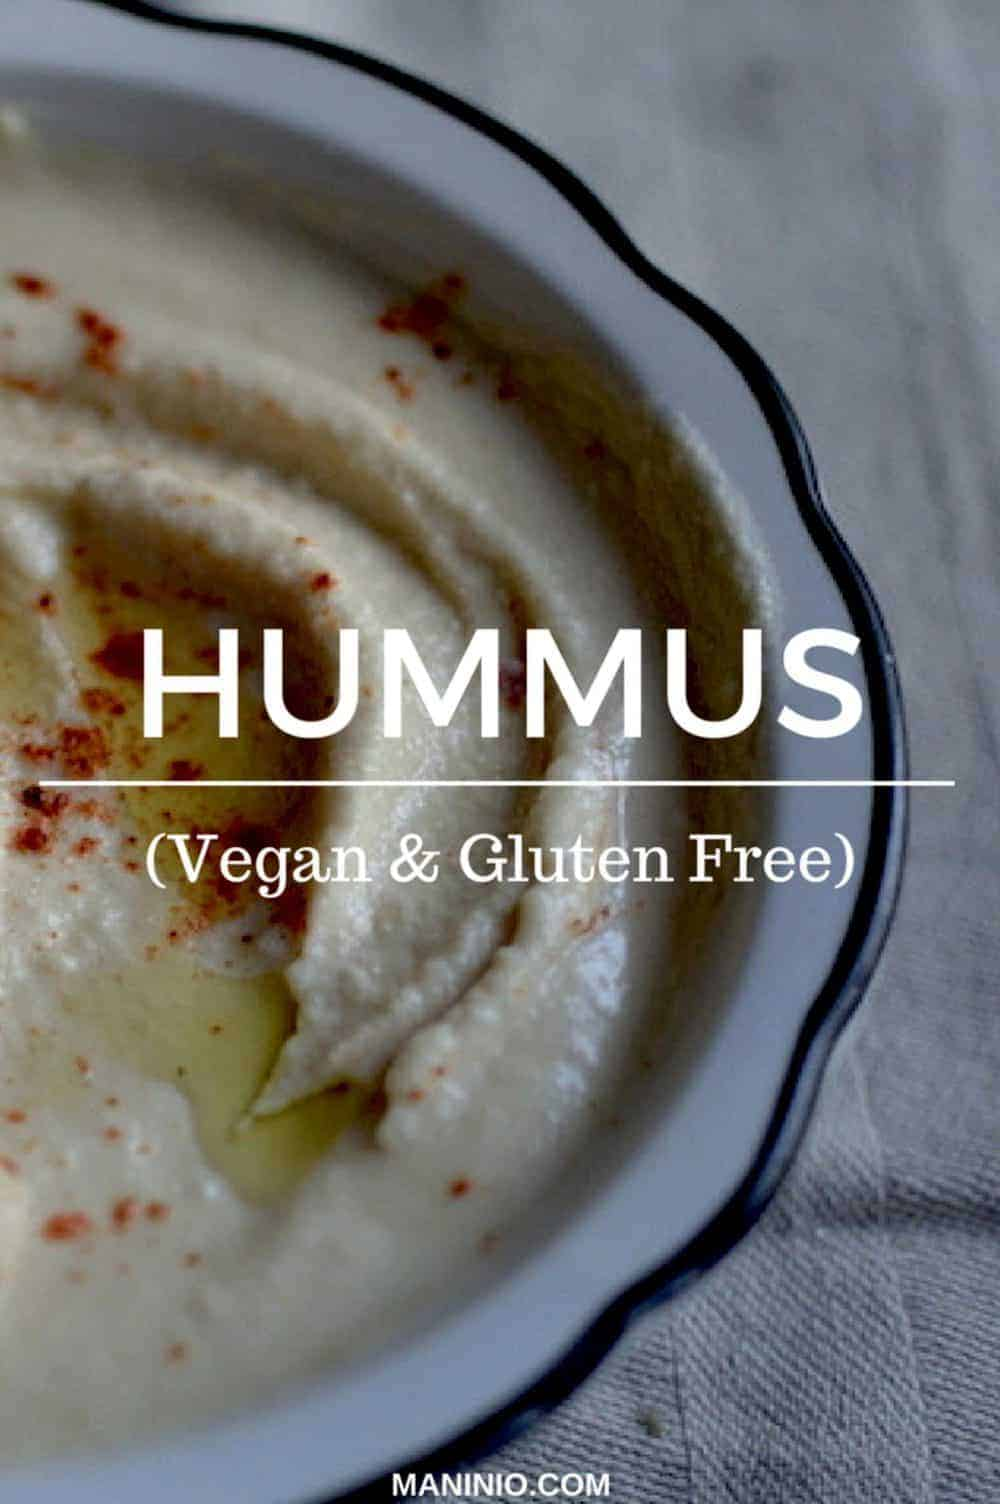 The original Arabic Hummus